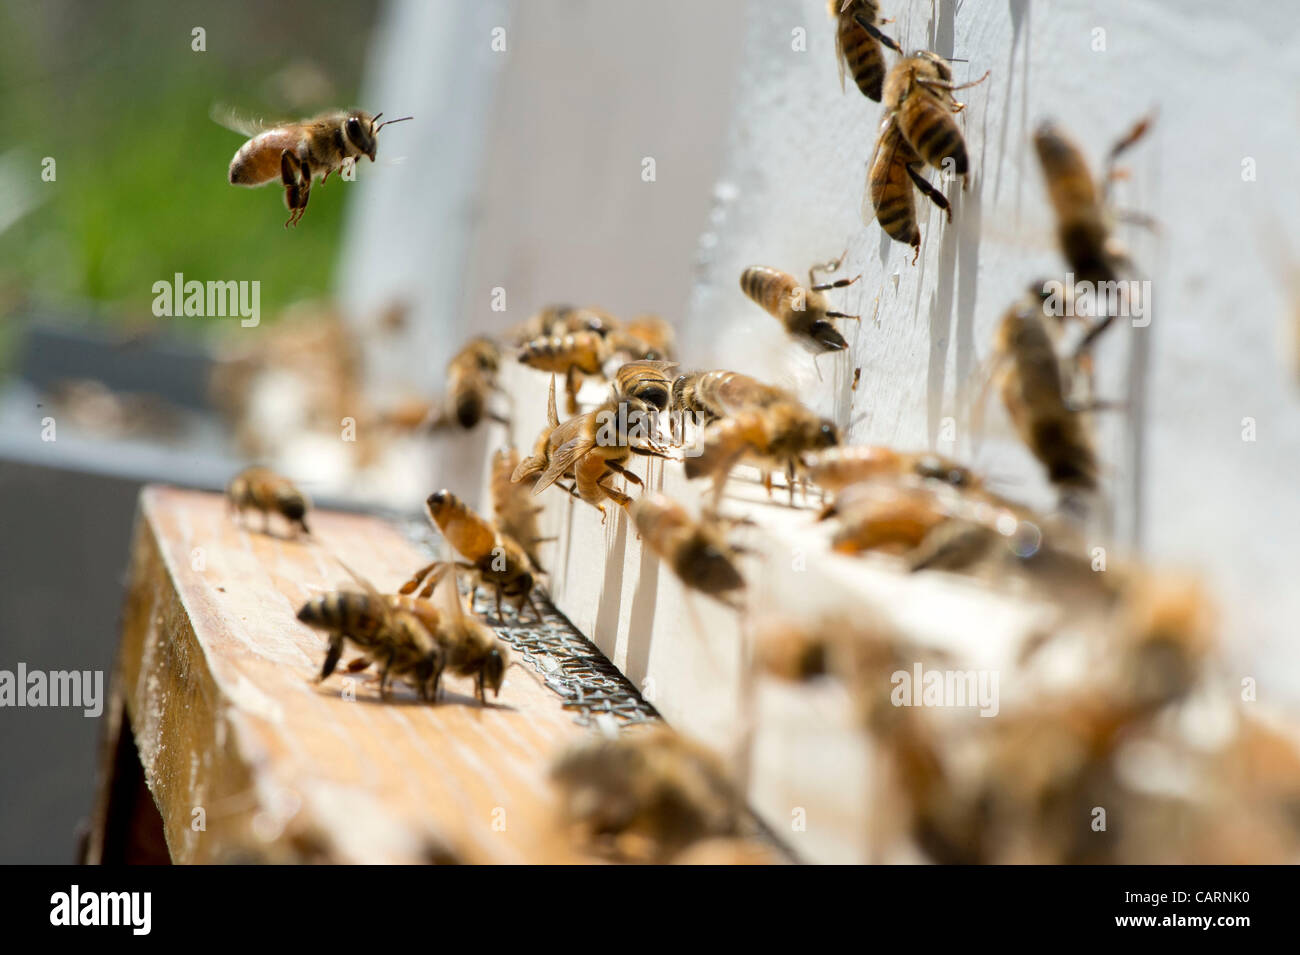 April 14, 2012 - Roseburg, Oregon, U.S - Honey bees gather at the entrance to a hive in a small apiary on a farm - Stock Image